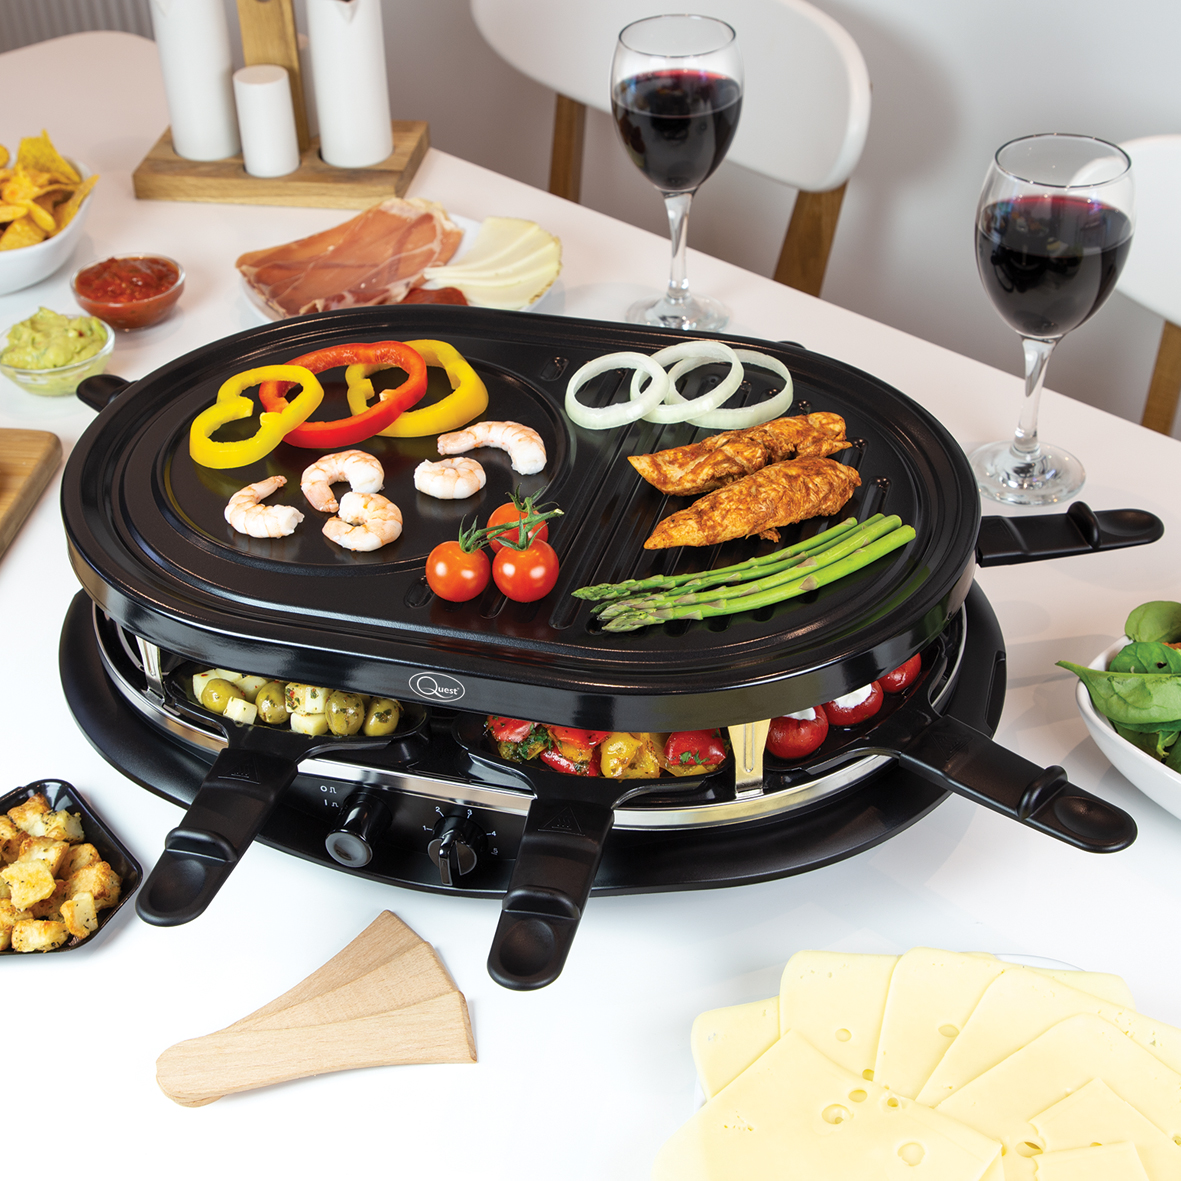 Raclette Grill - The Quest Raclette Grill is designed for sharing. Ideal for an informal family meal or relaxed dinner parties. Guests can prepare their own meal and choose from a range of vegetables, fish, meat and melted cheese to create their own delicious meal.